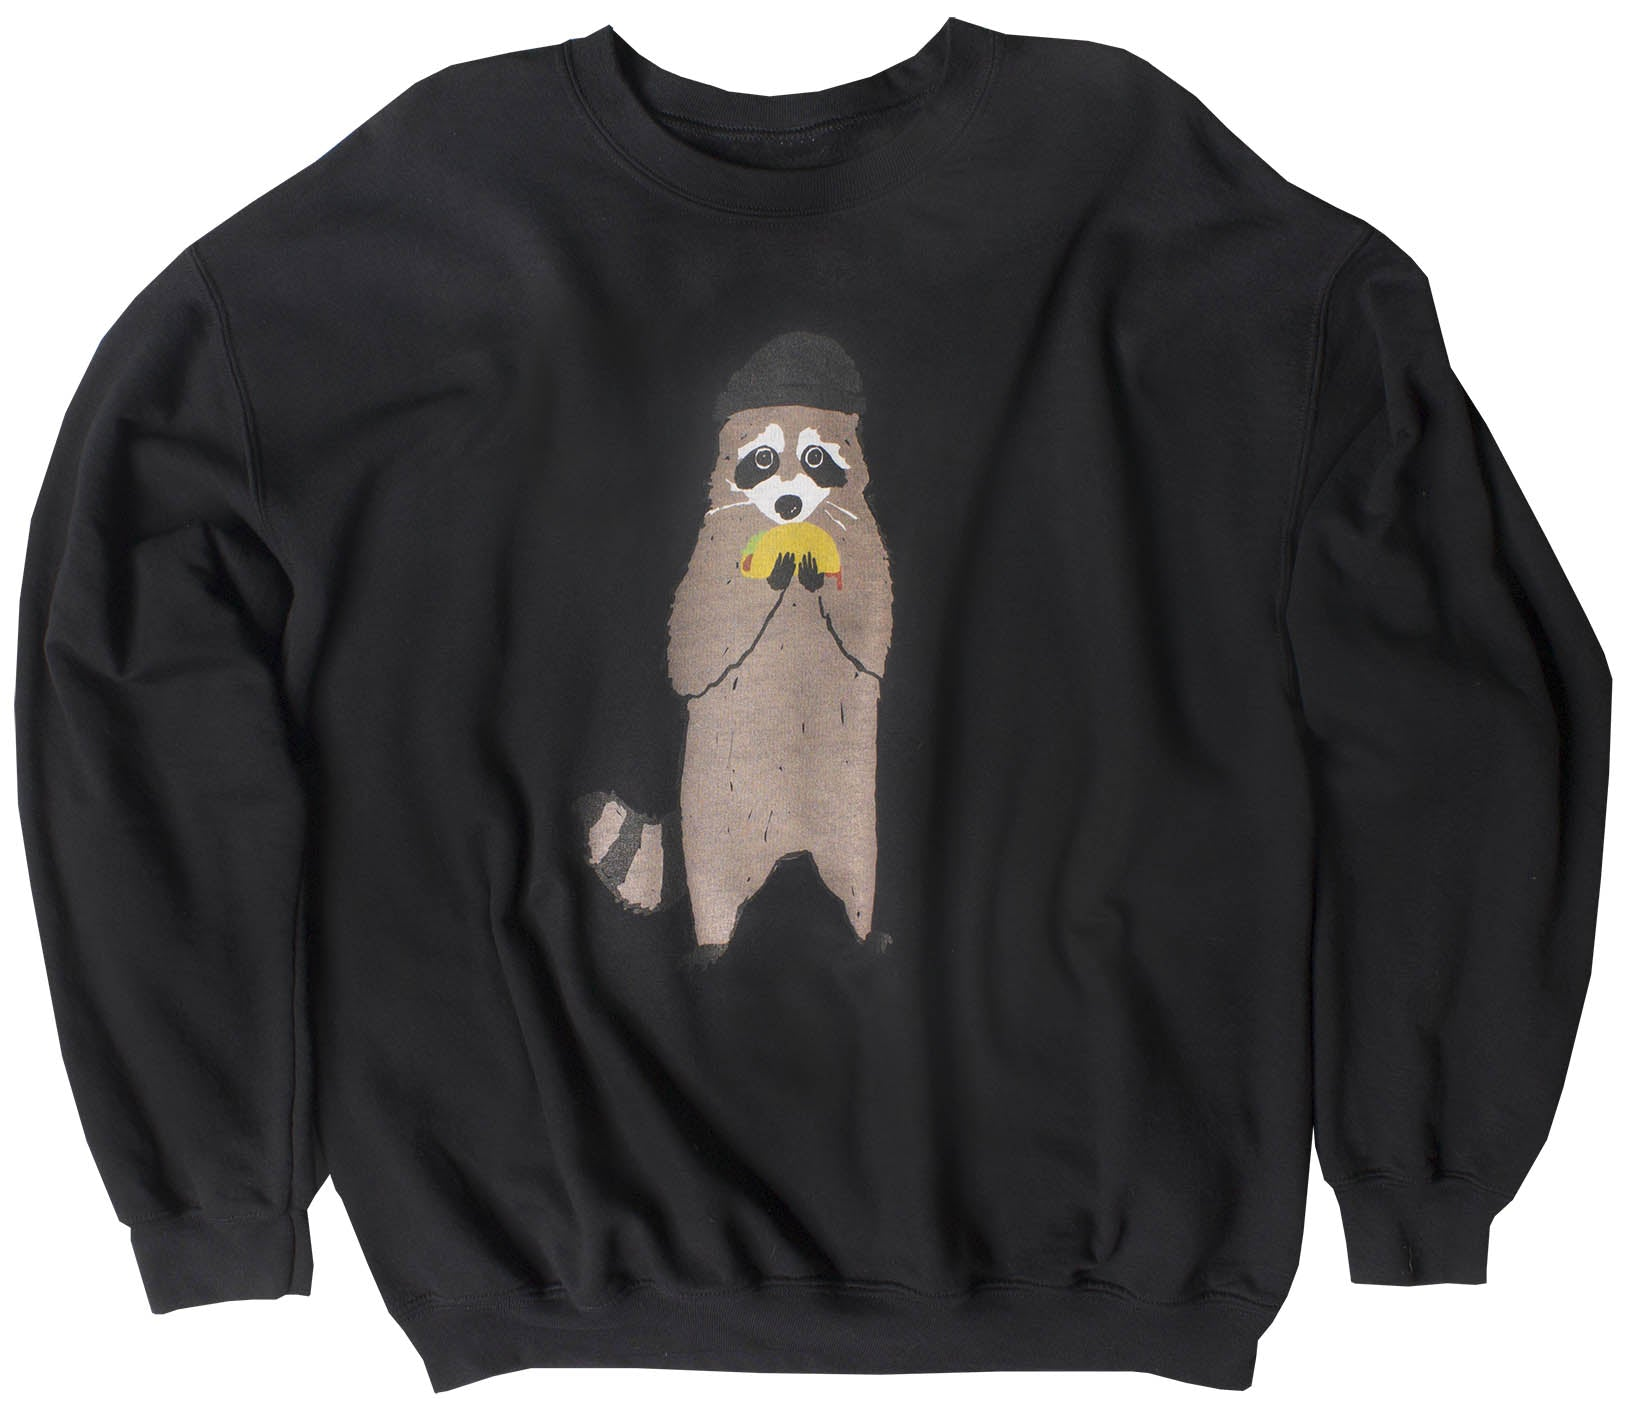 Taco Bandit Raccoon black burnout graphic sweatshirt